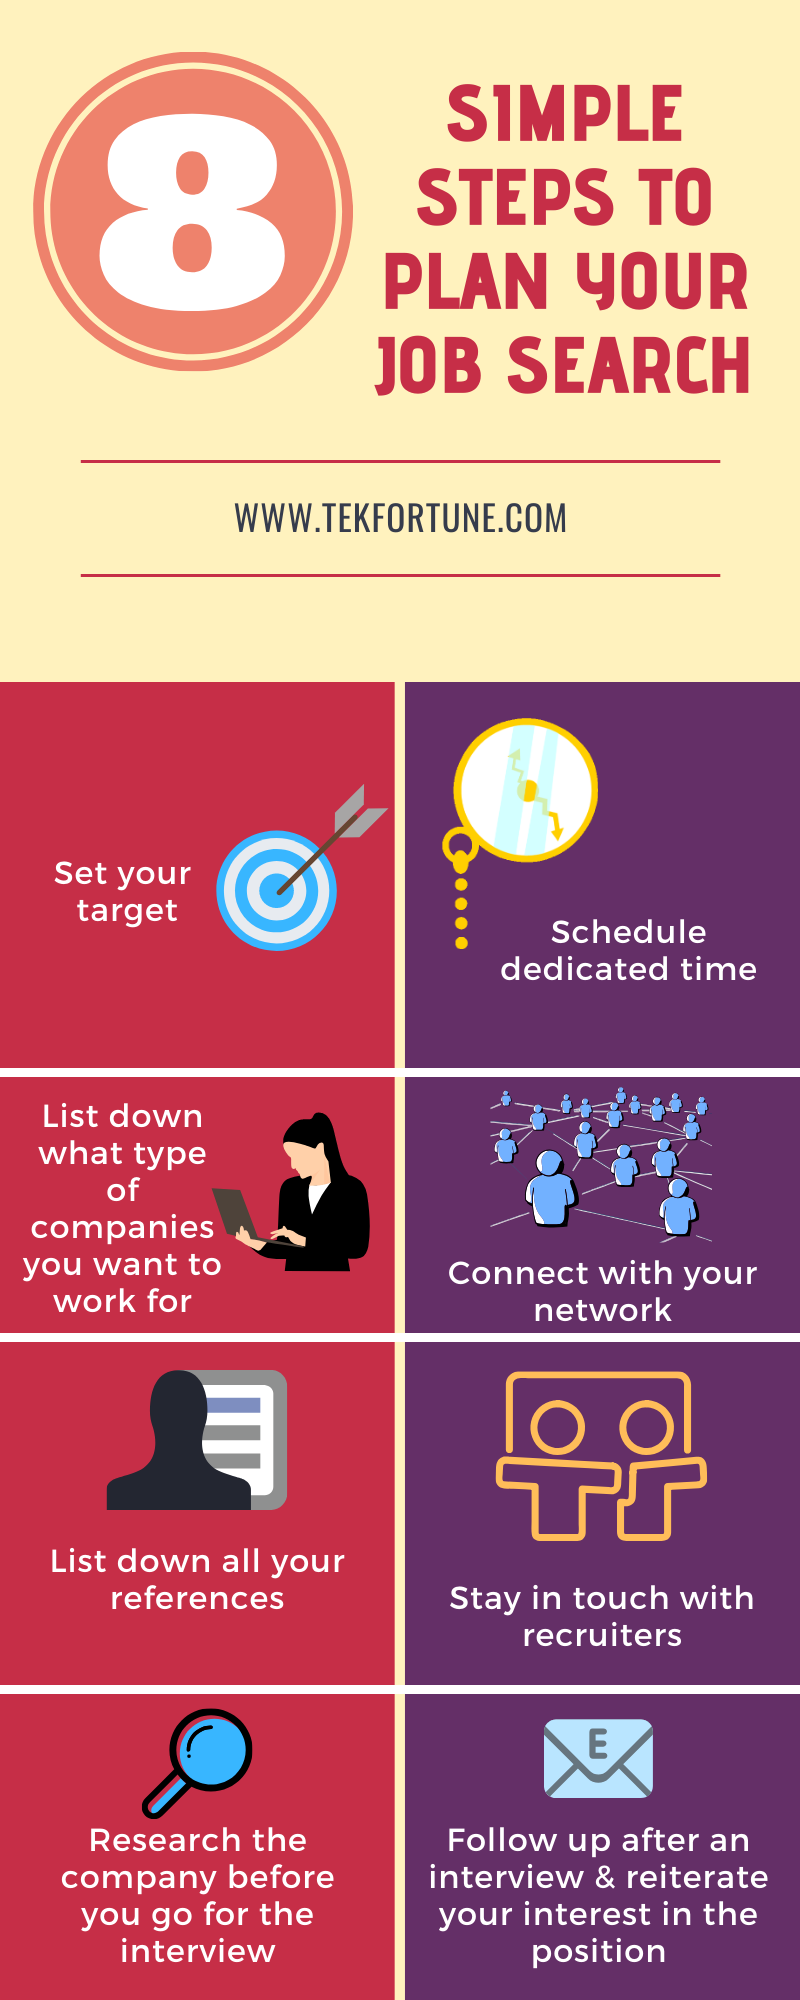 Steps to find a job